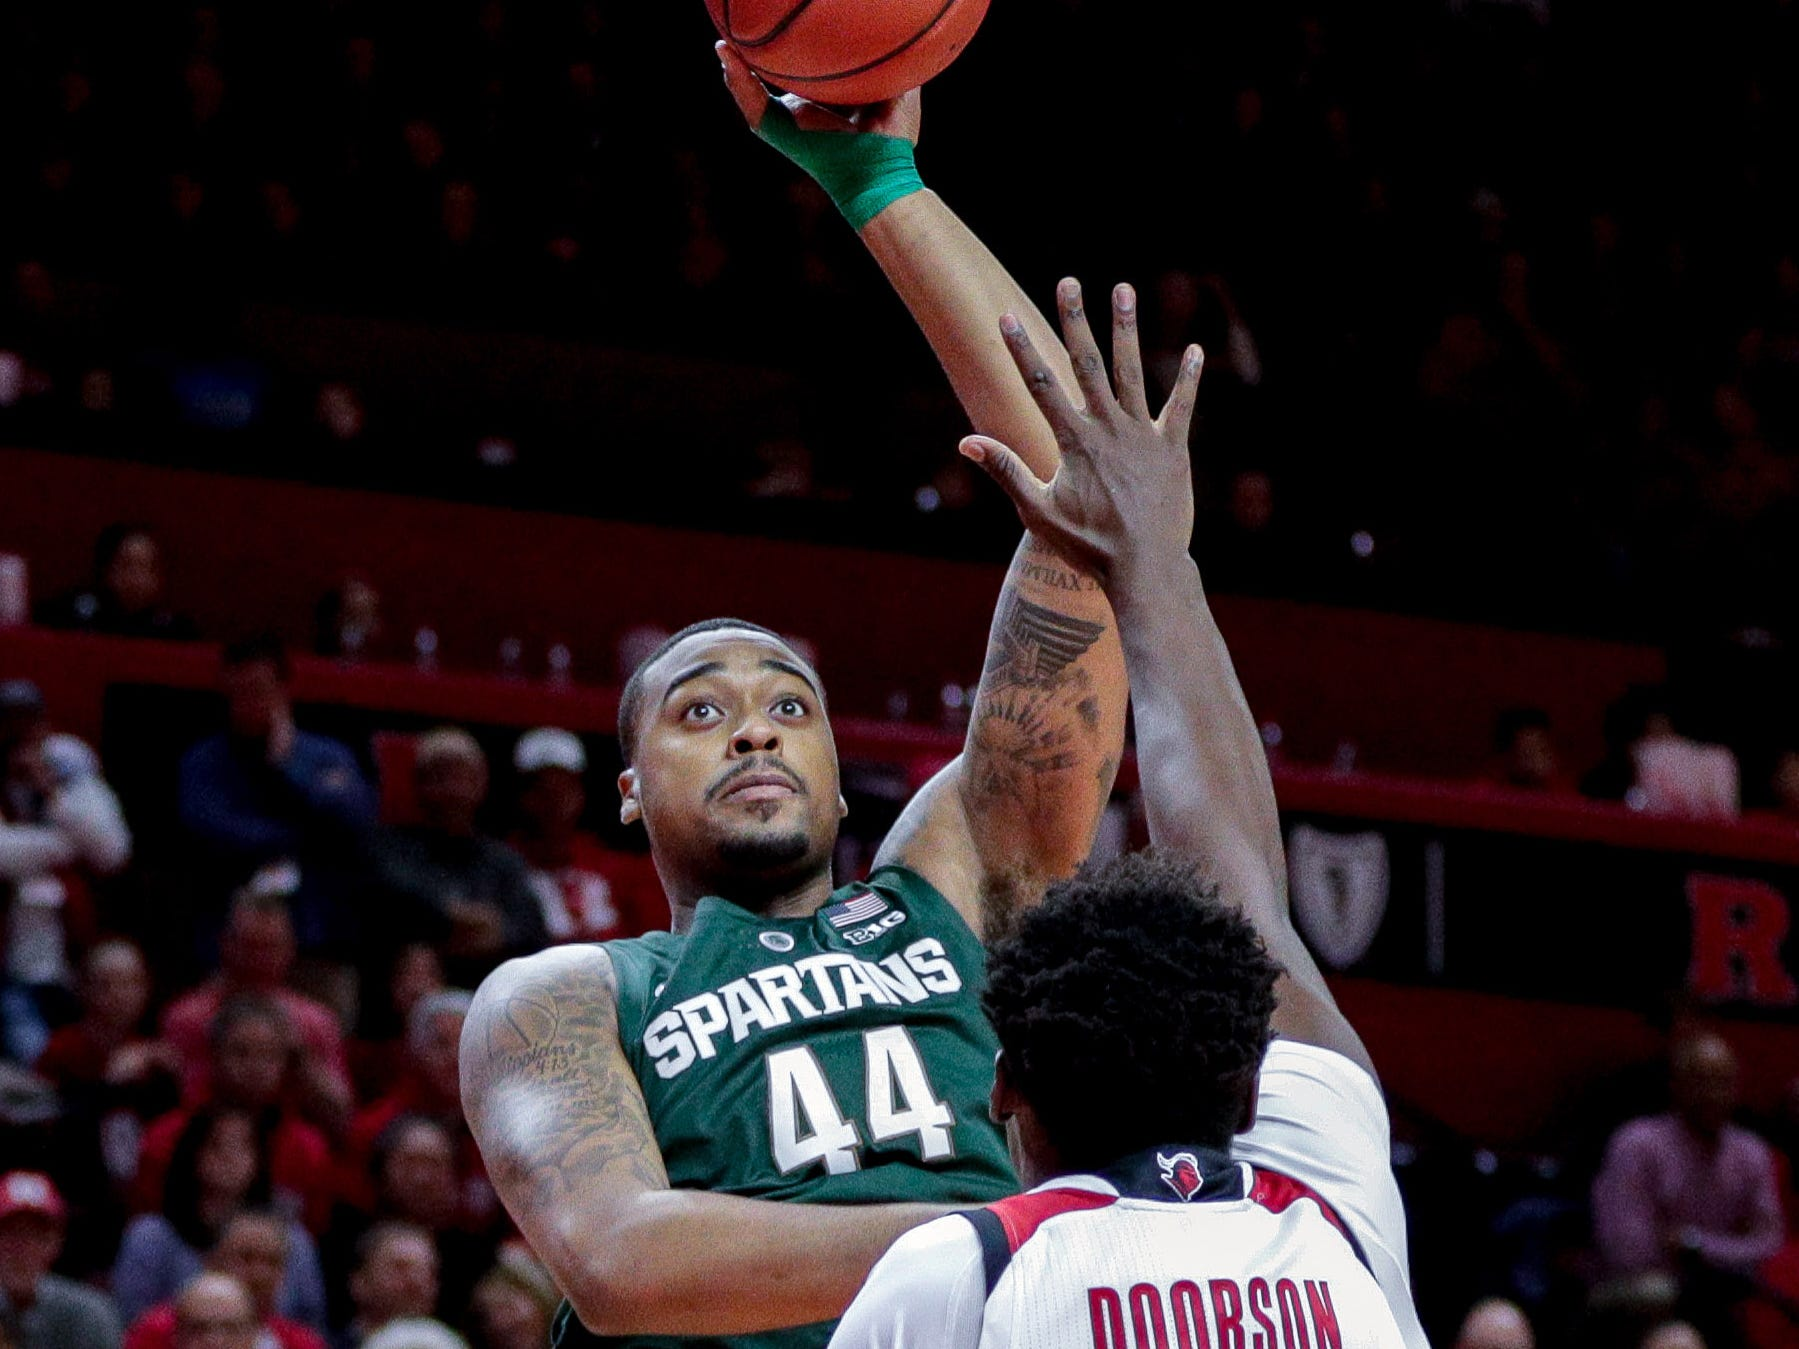 Michigan State Spartans forward Nick Ward (44) shorts the ball over Rutgers Scarlet Knights center Shaquille Doorson (2) during the first half at Rutgers Athletic Center (RAC).